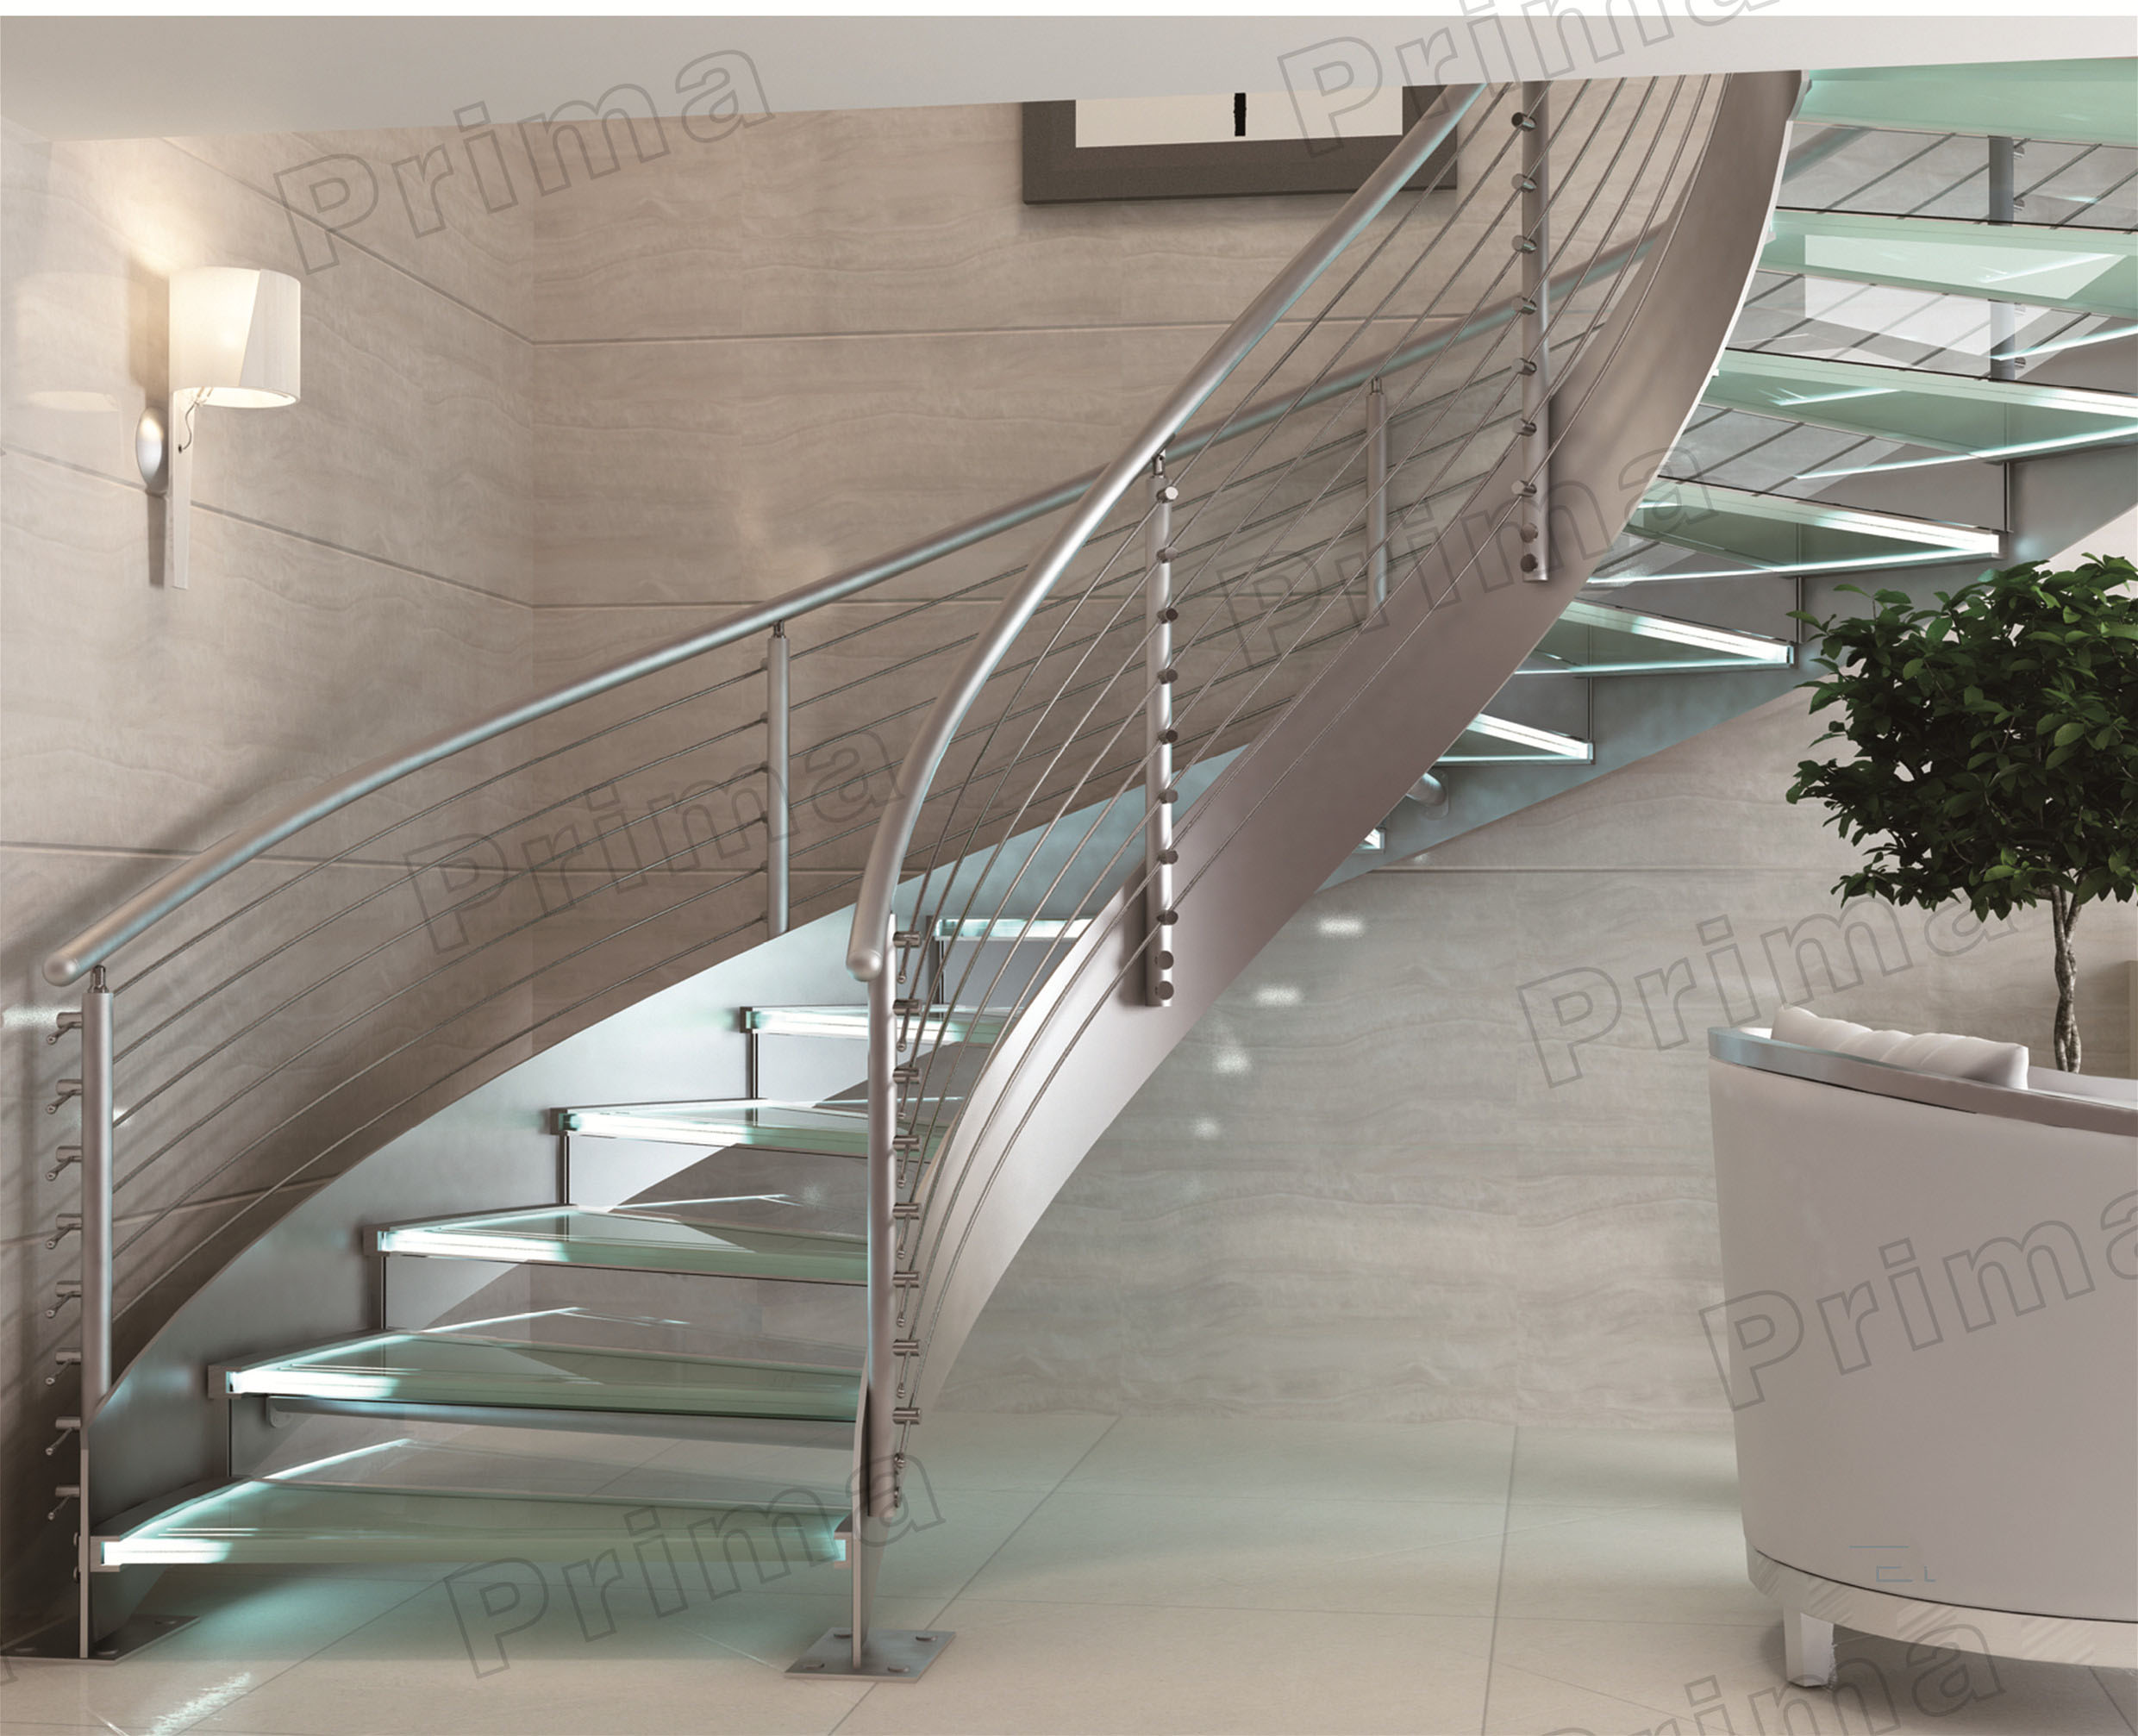 Charming Indoor Curved Glass Stairs / Stainless Steel Round Stairs Railing / Glass  Curved Stairs